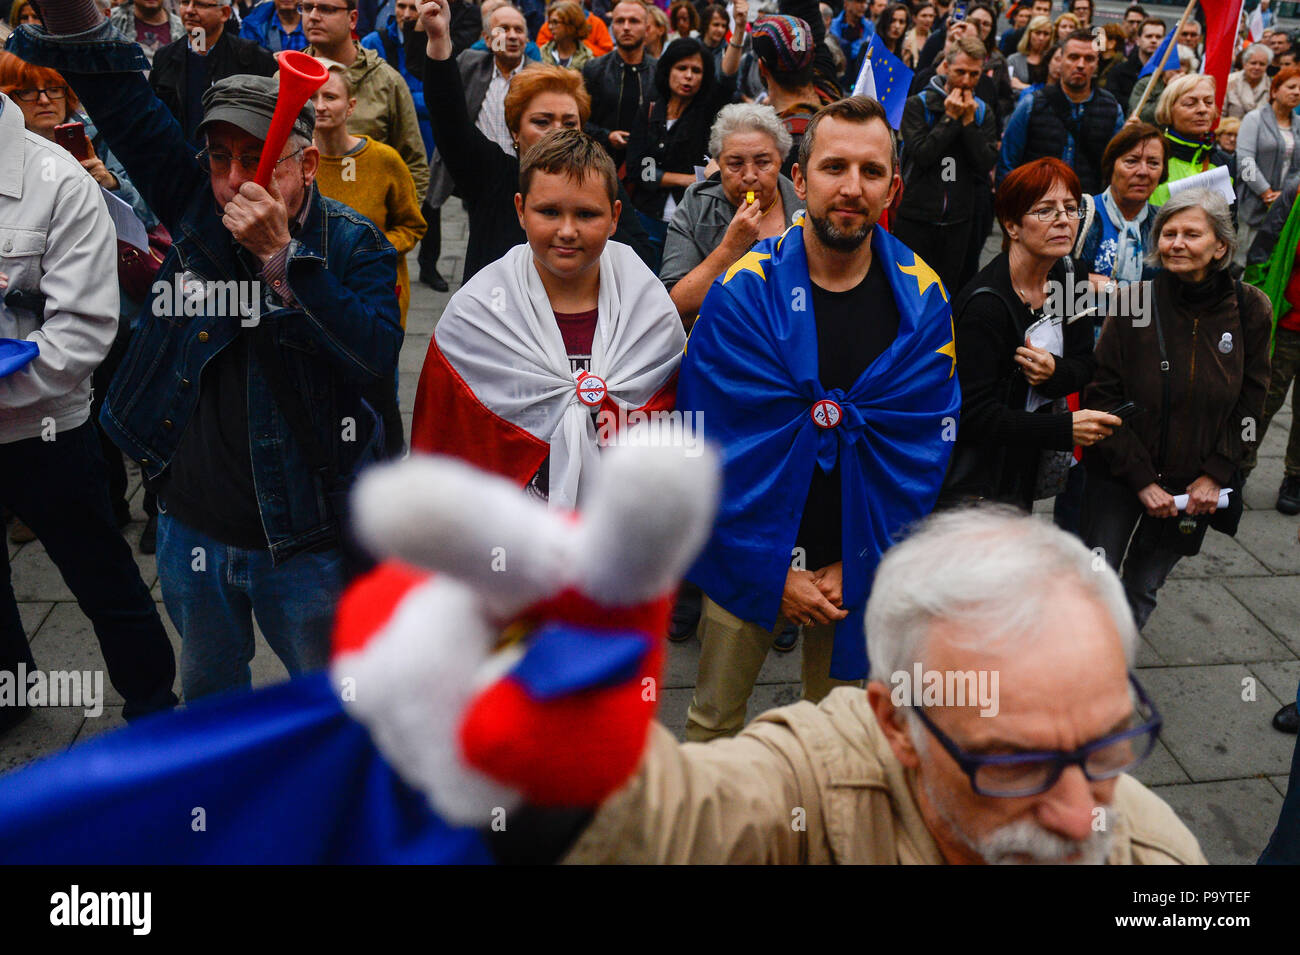 Two men seen covered in both Polish and European Union flags. People demonstrate against reforms of the Supreme Court and demand for free courts in Krakow, Poland. - Stock Image